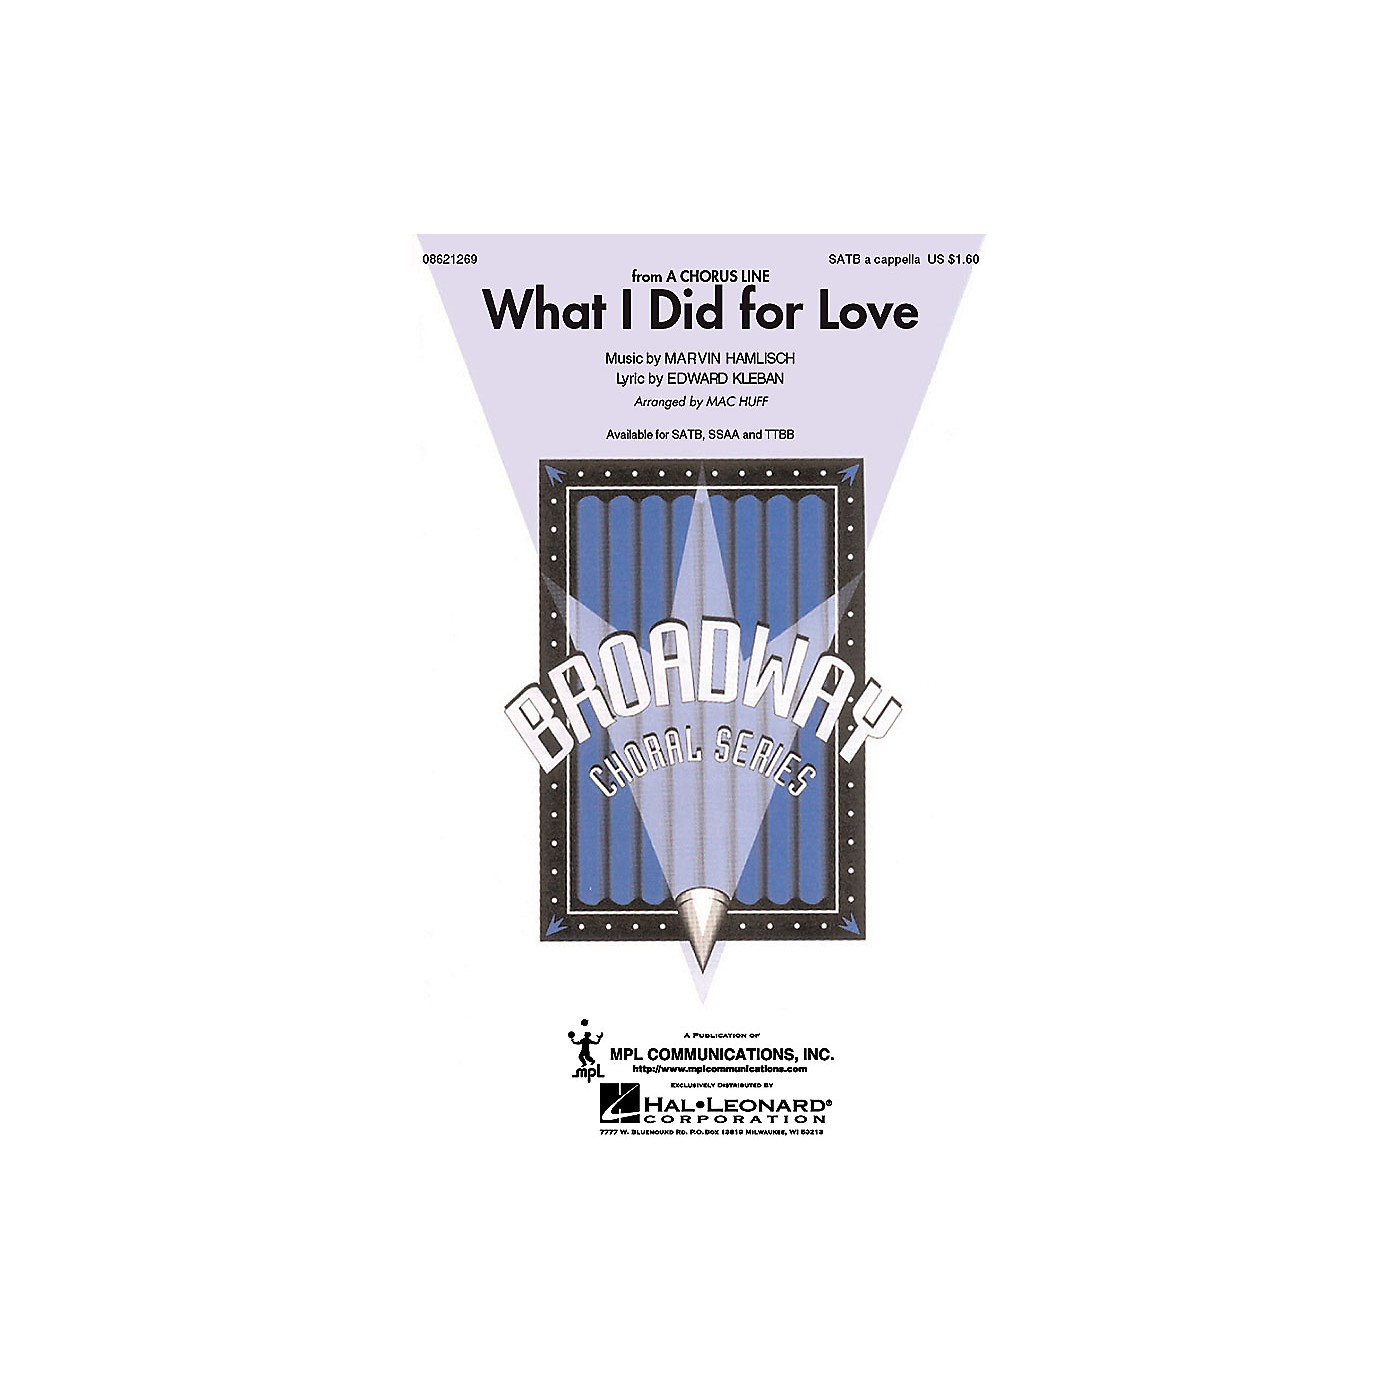 Hal Leonard What I Did for Love (from A Chorus Line) SATB a cappella arranged by Mac Huff thumbnail